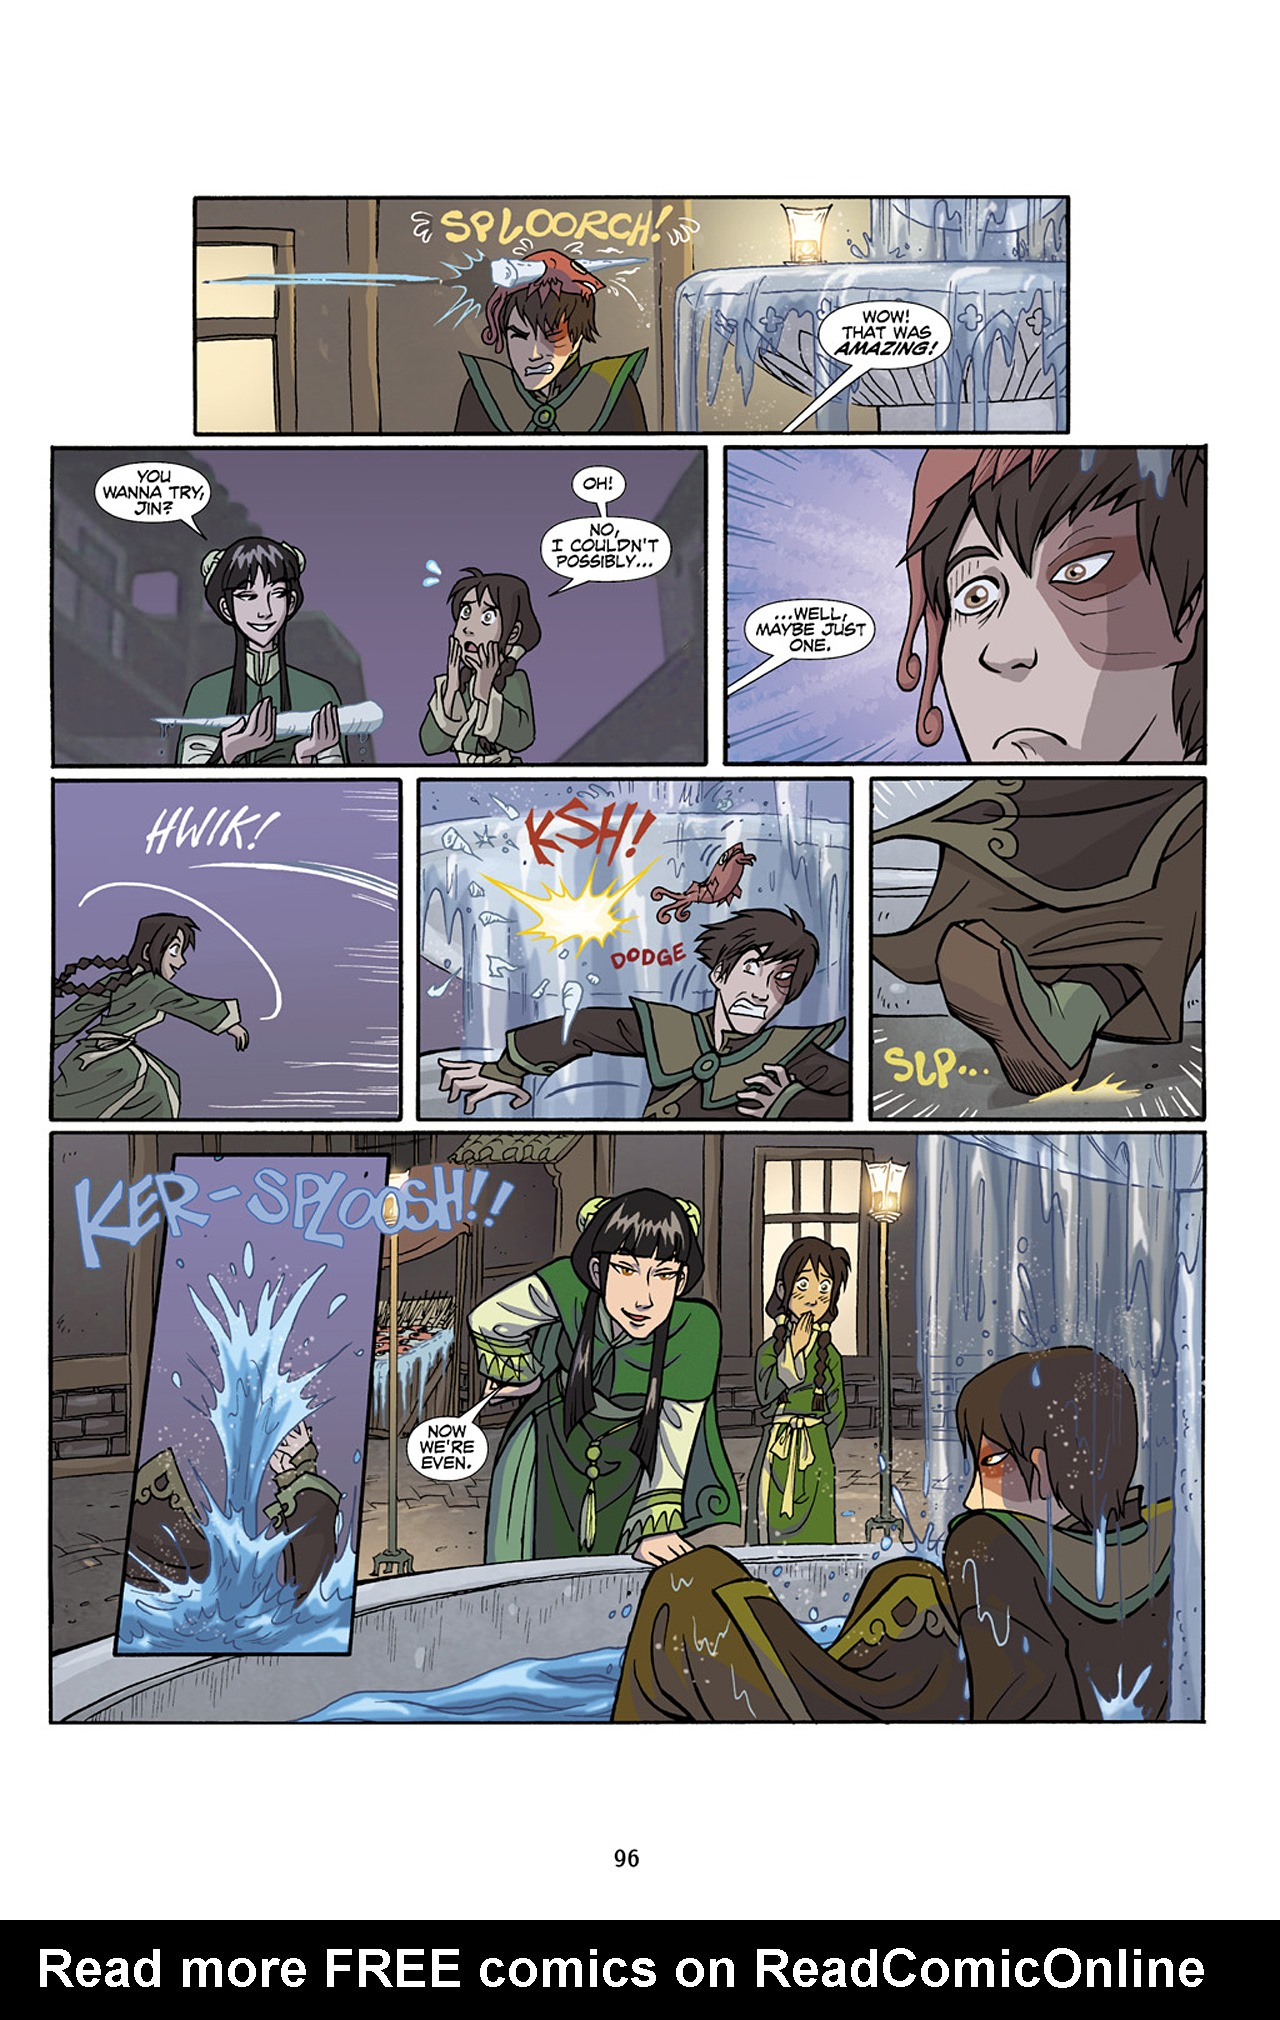 Nickelodeon Avatar: The Last Airbender - The Lost Adventures chap full pic 97